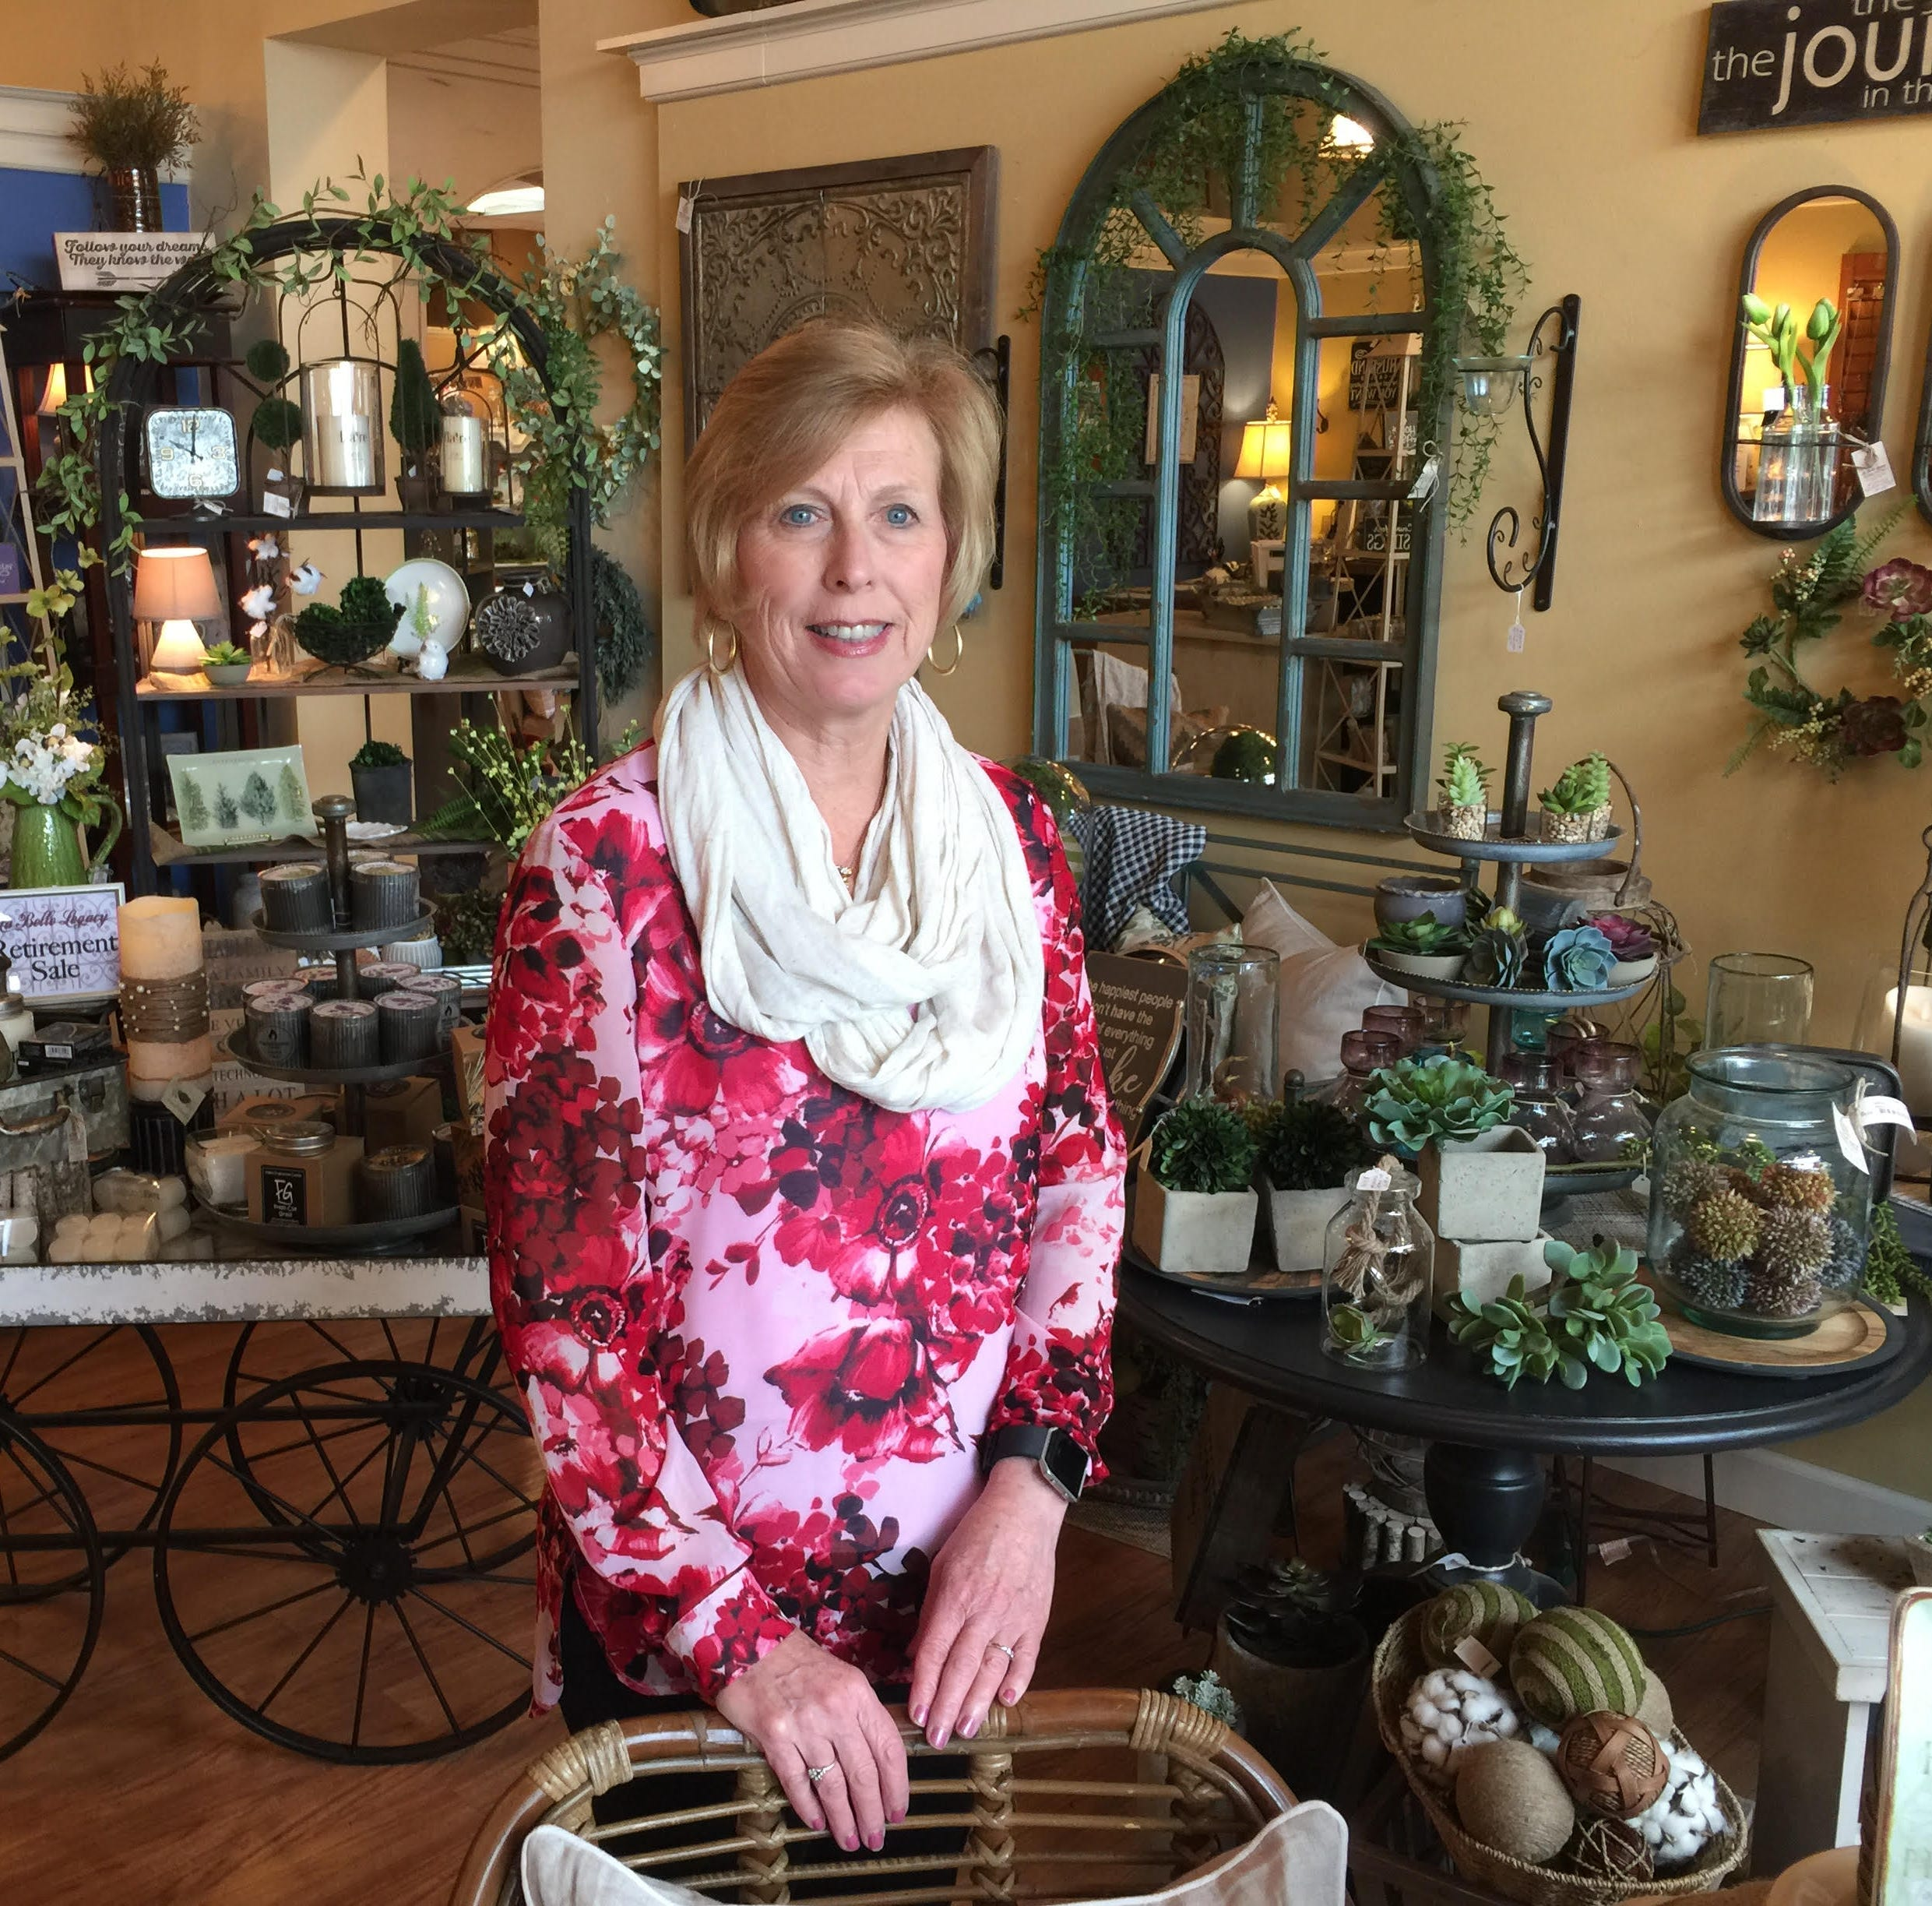 A home decor consignment shop in Oconomowoc is looking for a new owner